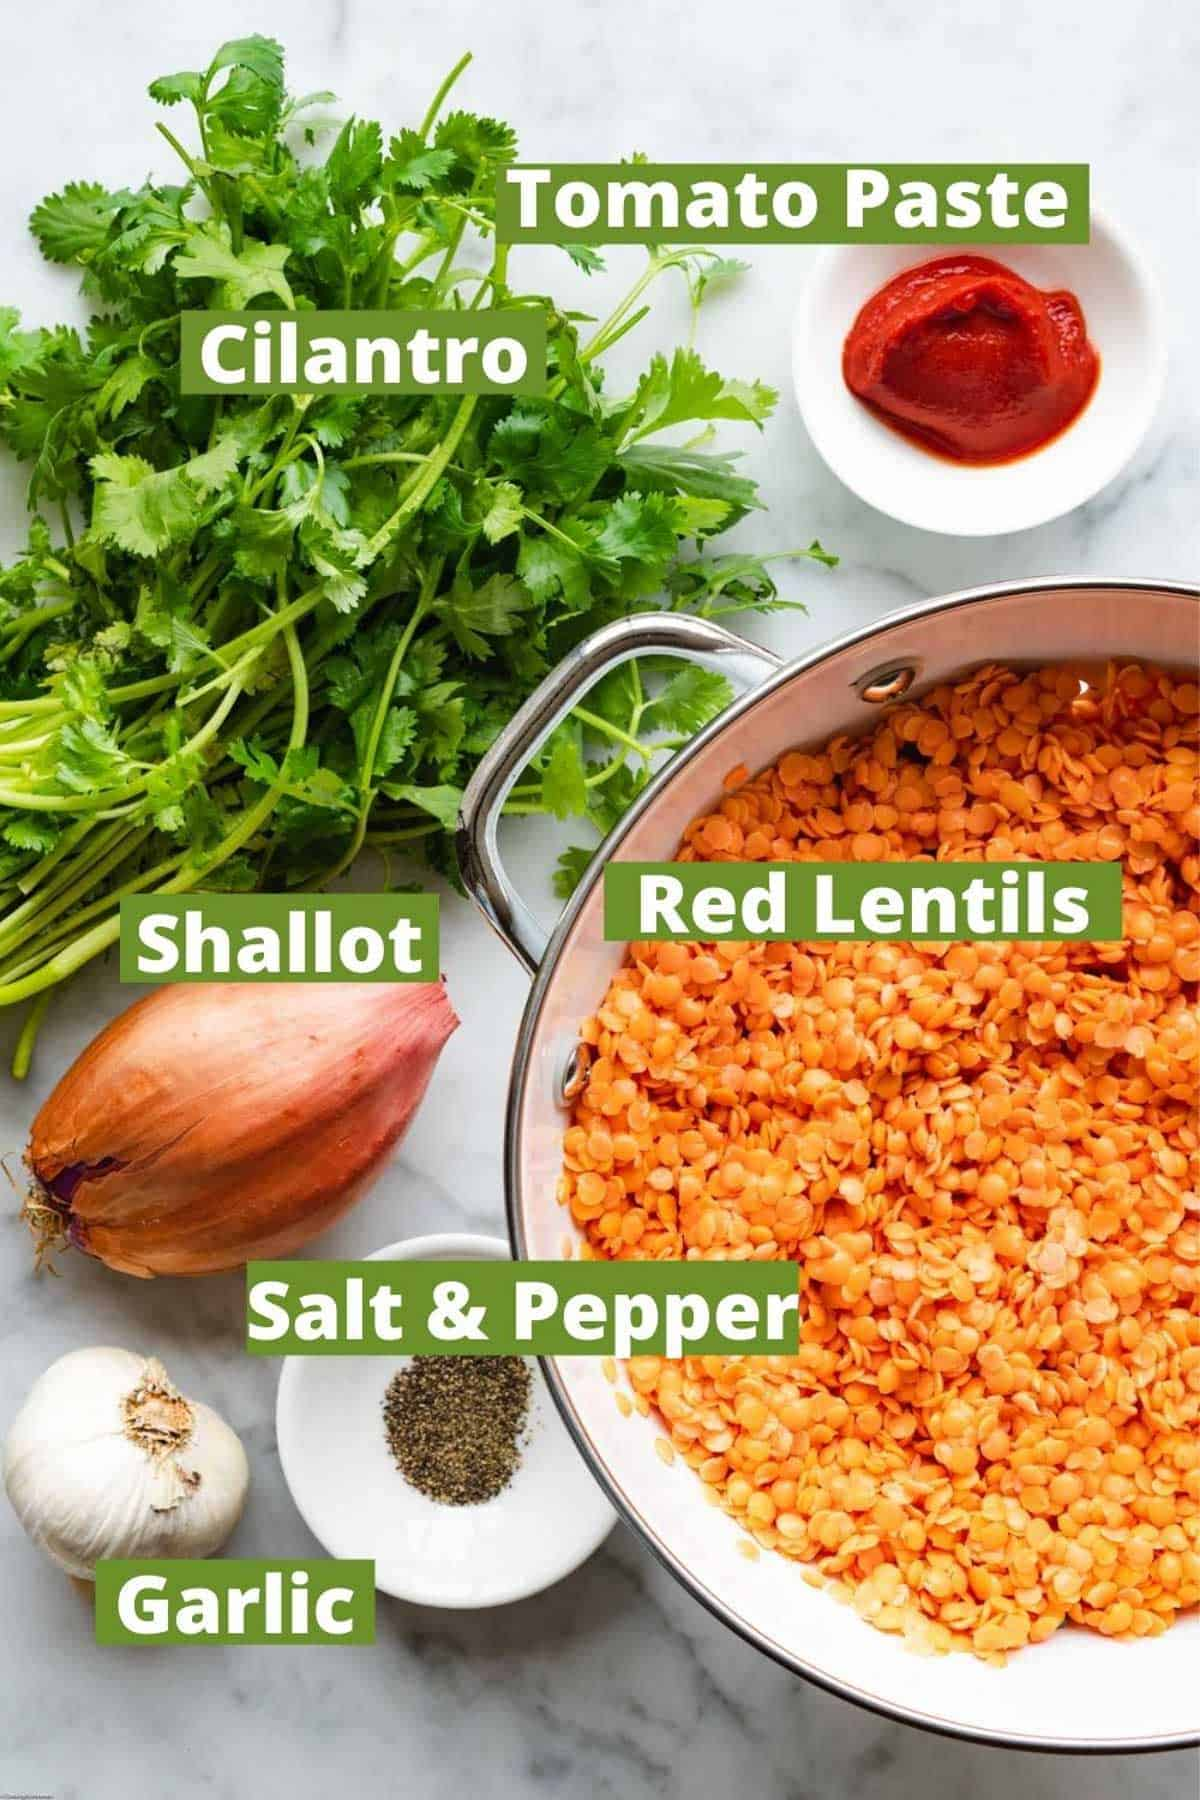 Red lentils, carrots, cilantro, shallots, tomato paste, garlic, salt, and pepper for making Easy 6-Ingredient Lentil Burgers.